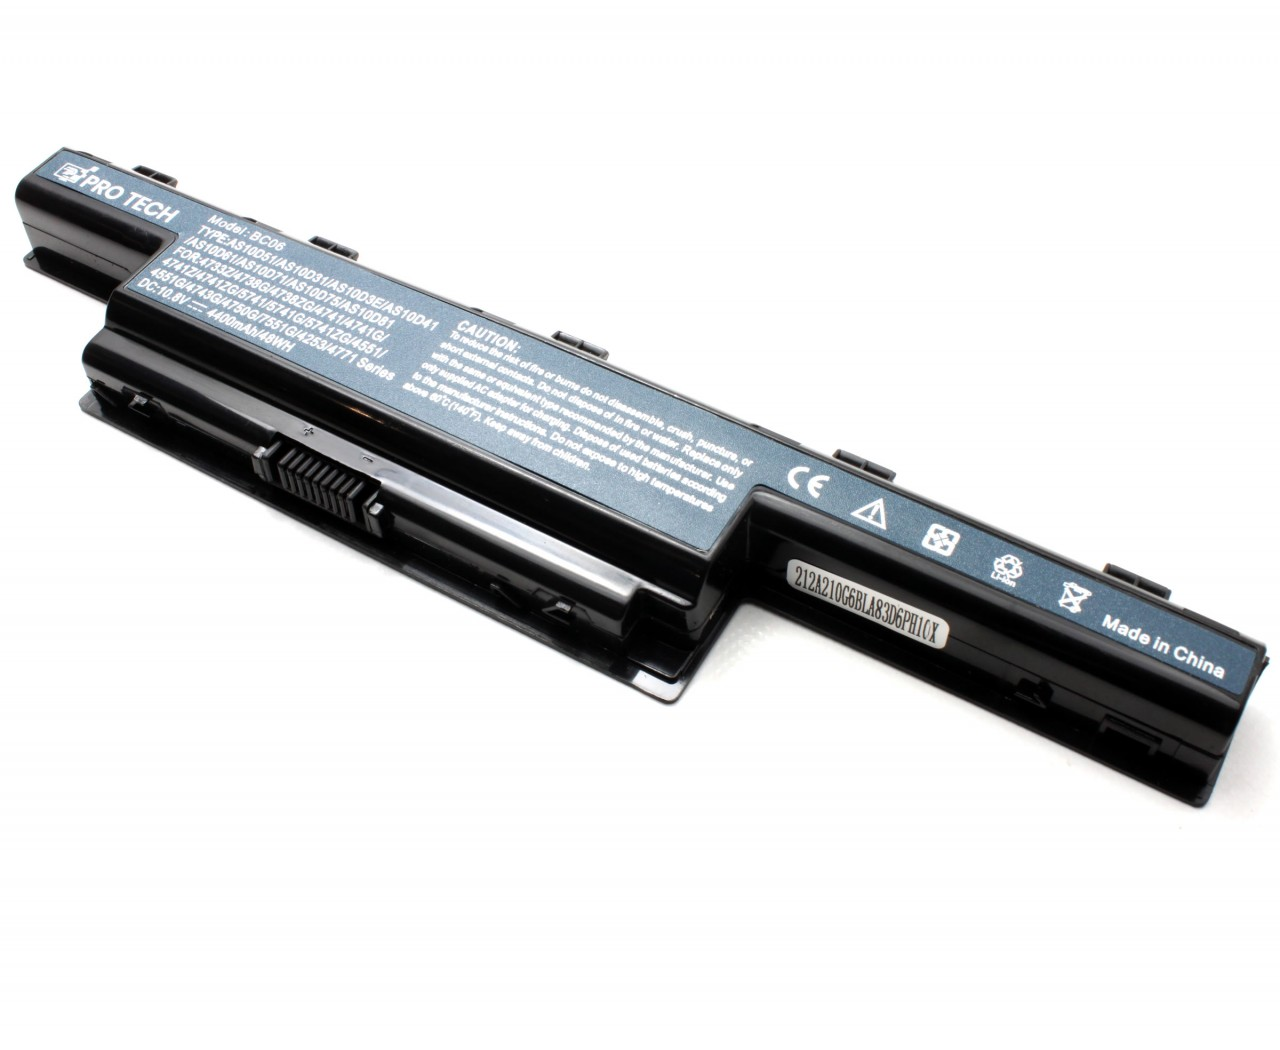 Baterie Packard Bell EasyNote LM94 9 celule imagine powerlaptop.ro 2021